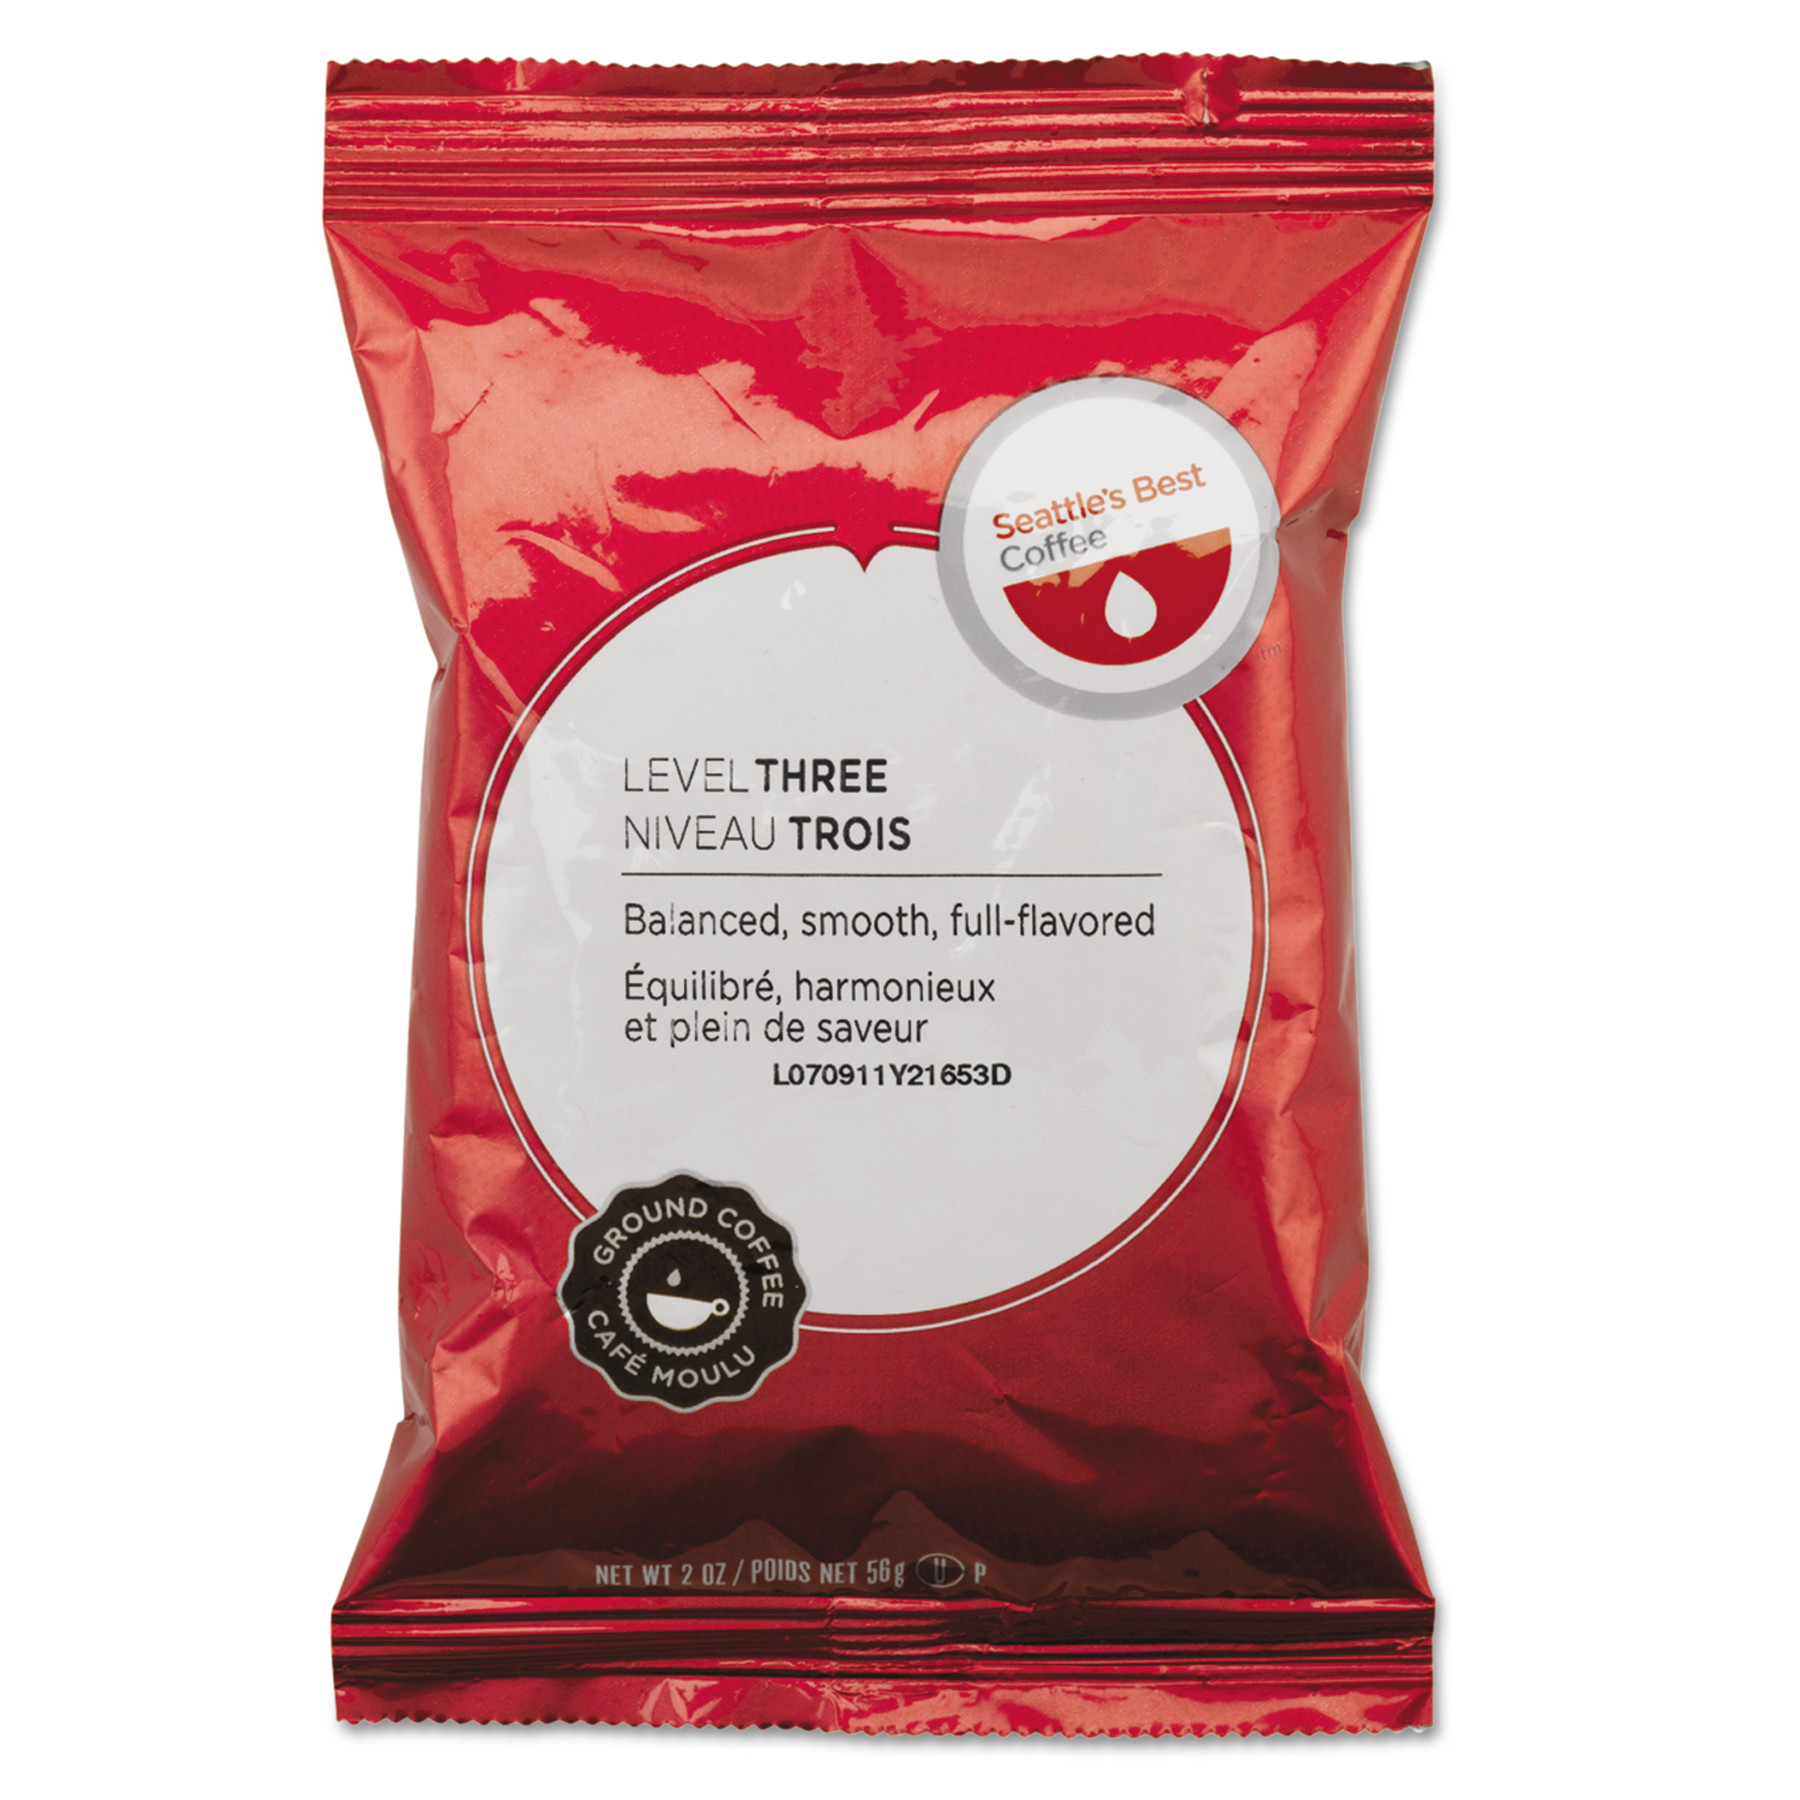 Seattle's Best Premeasured Coffee Packs, Signature-Level 3, 2 oz Packet, 18/Box